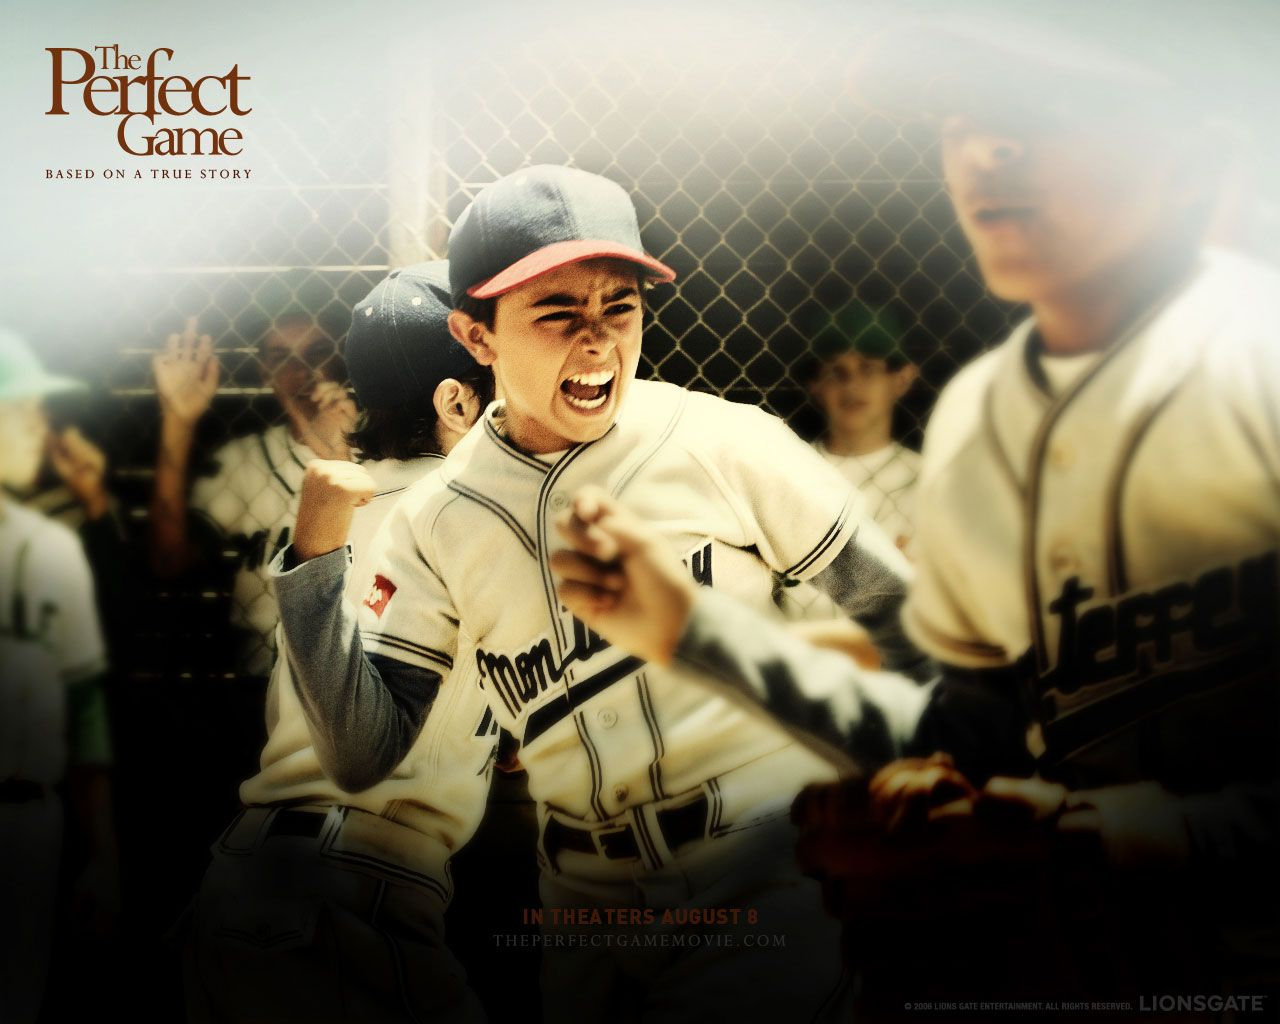 Watch Streaming HD The Perfect Game, starring Clifton